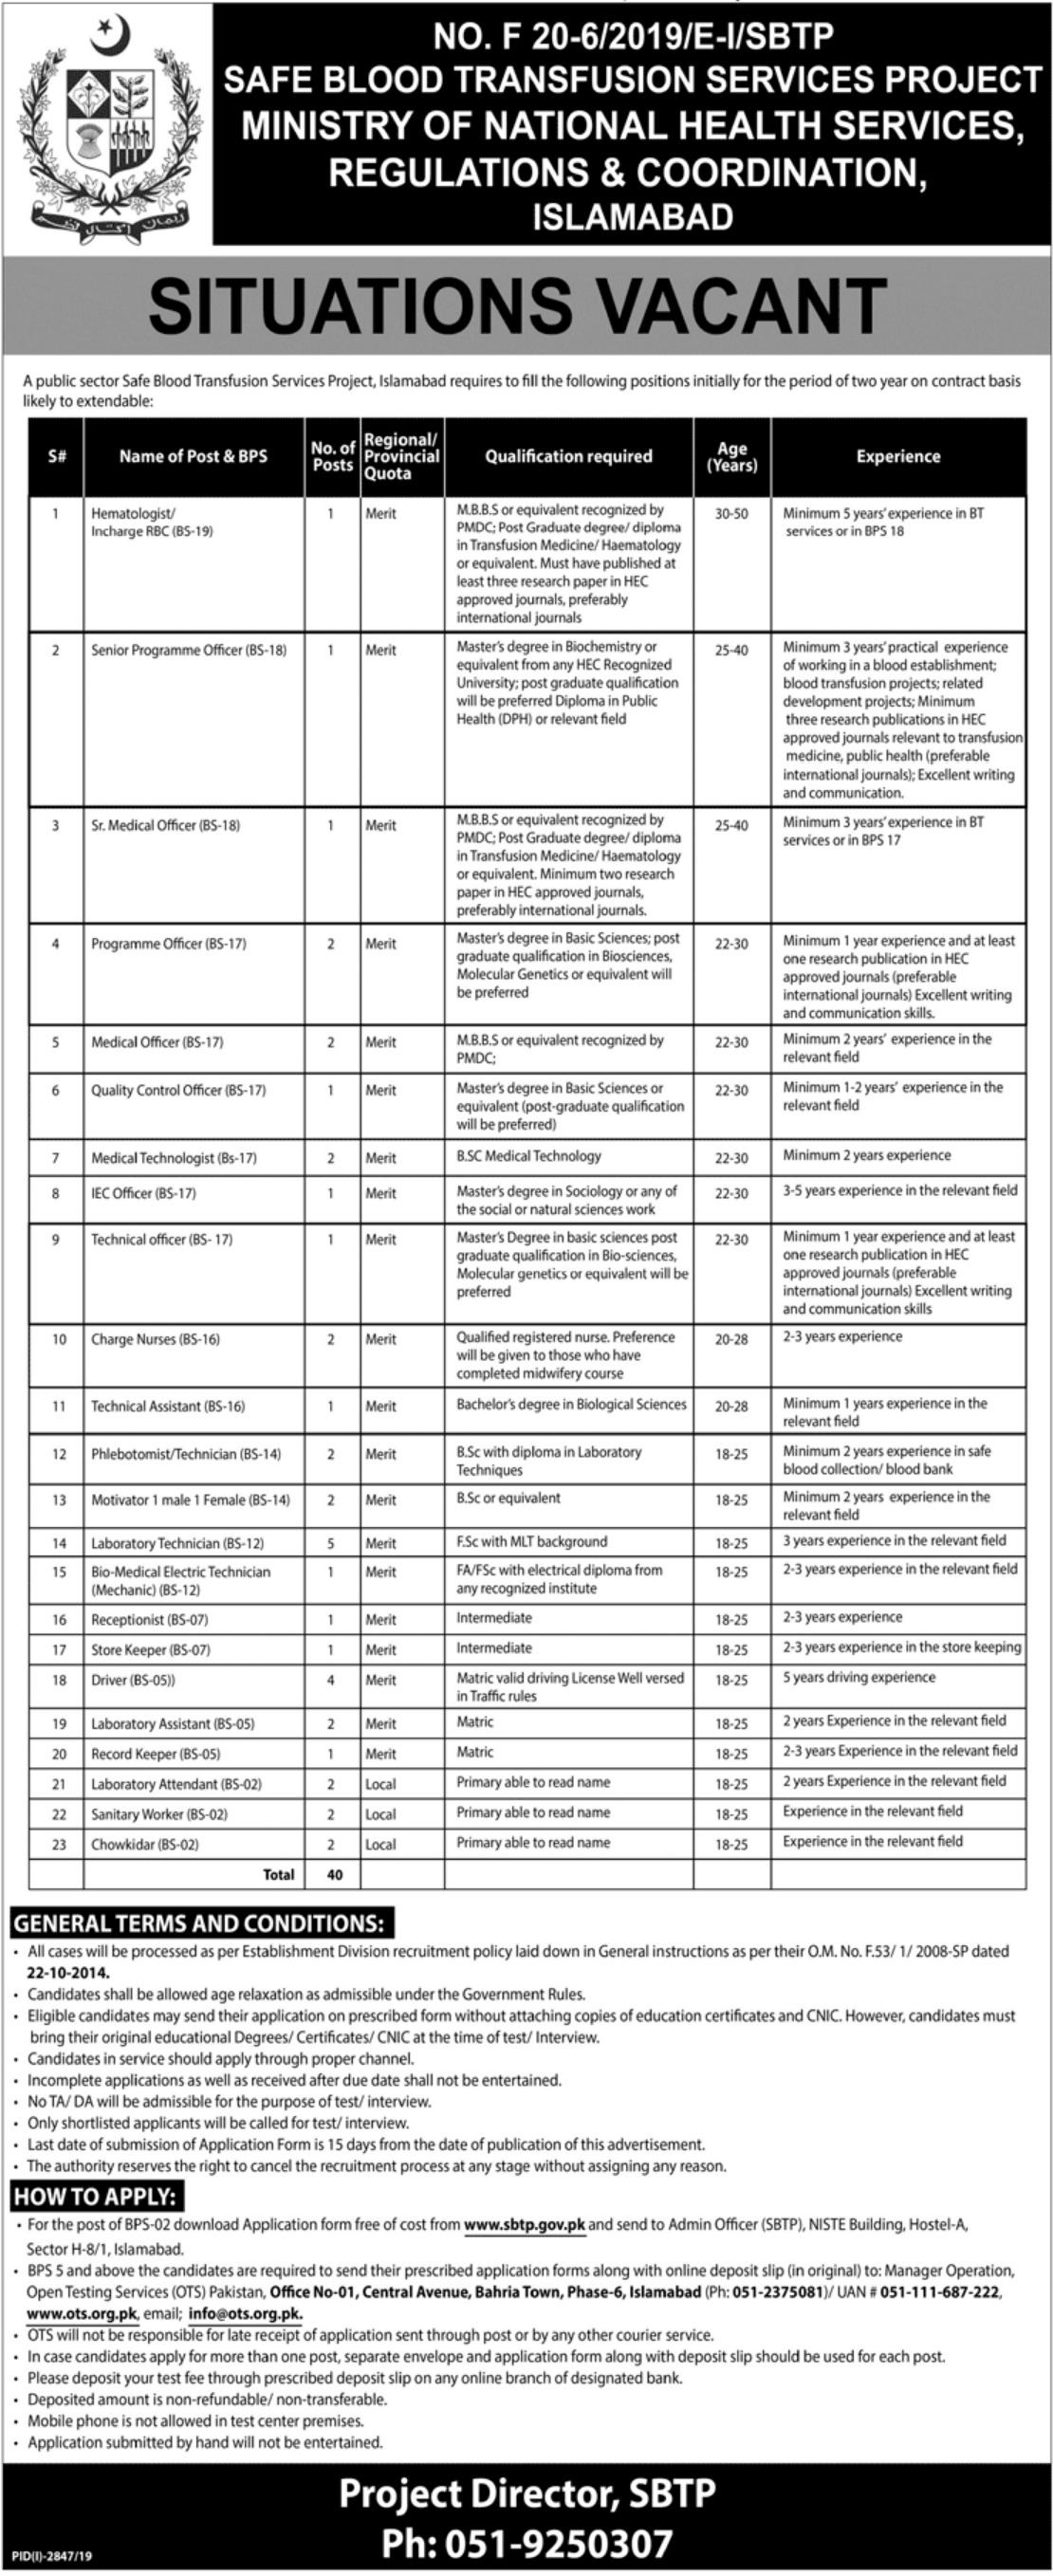 National Health Service Regulations and Coordination Islamabad Jobs 2019